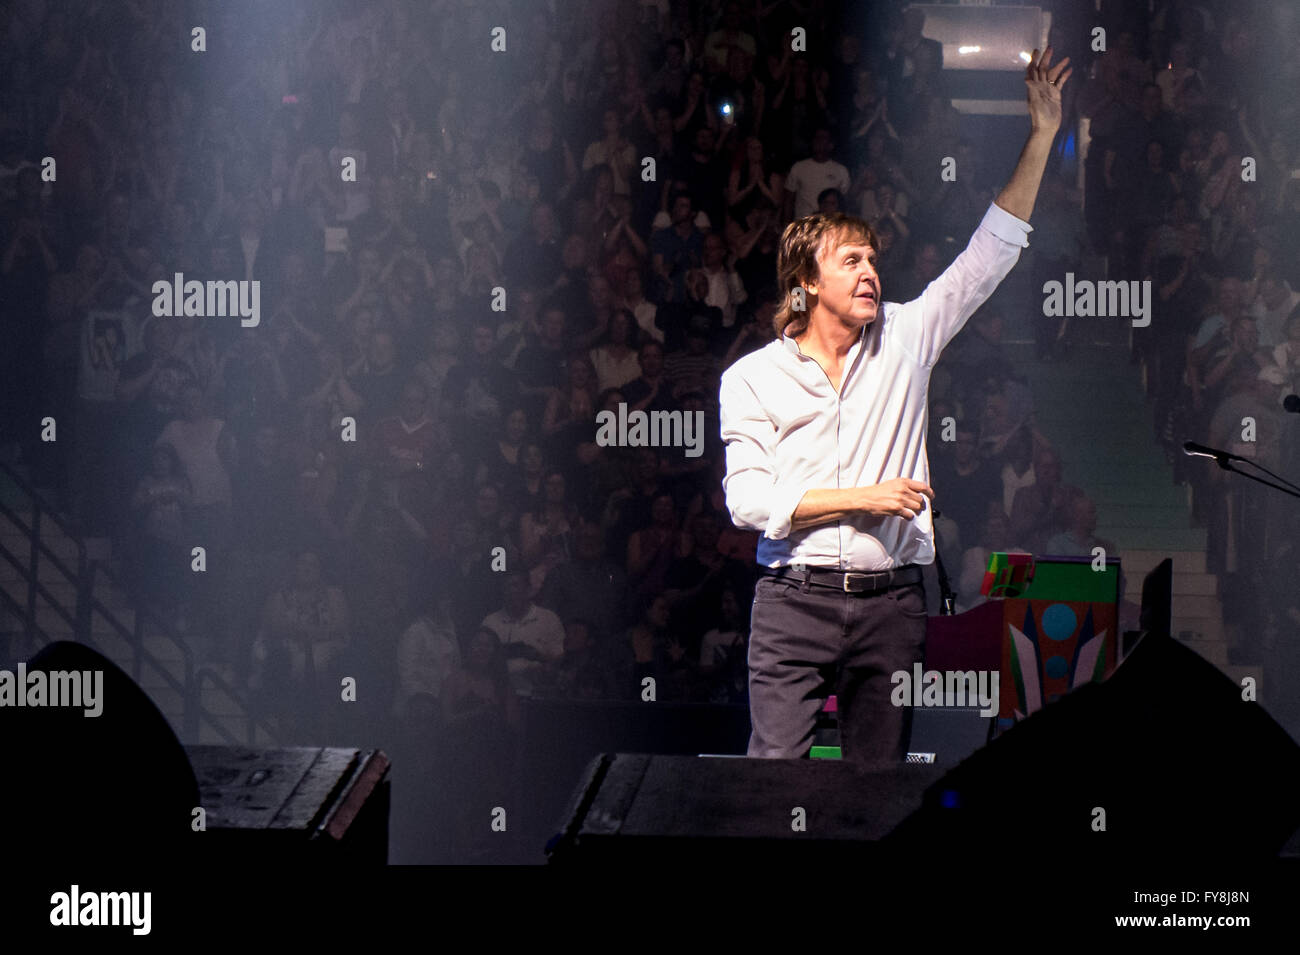 Paul McCartney of The Beatles during his 'One On One' tour @ Rogers Arena in Vancouver, BC on April 20th - Stock Image